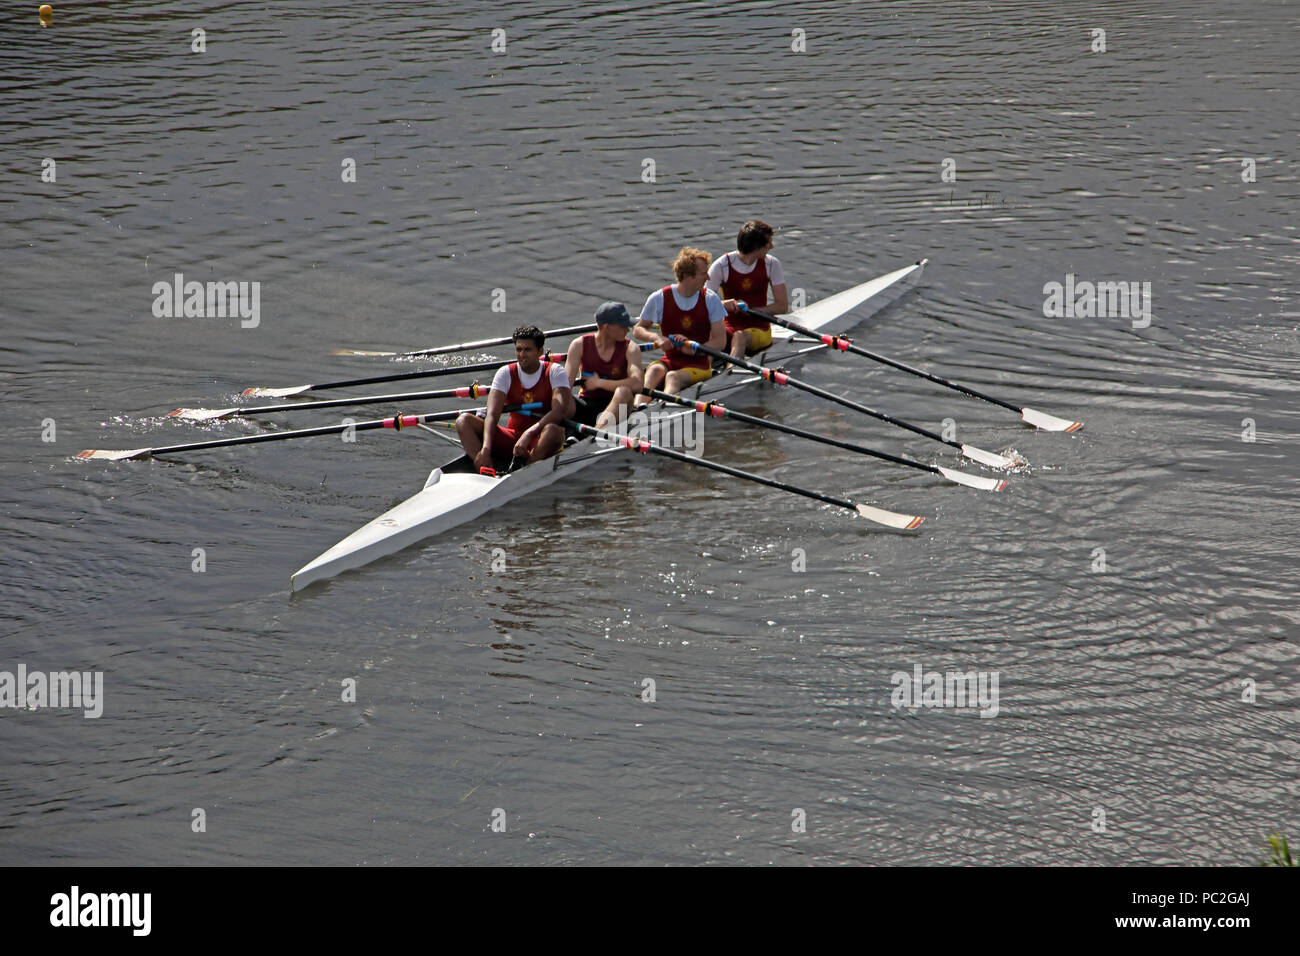 Liverpool Victoria Coxless Mens Quad,at Warrington Rowing Club 2018 Summer regatta, Howley lane, Mersey River, Cheshire, North West England, UK - Stock Image